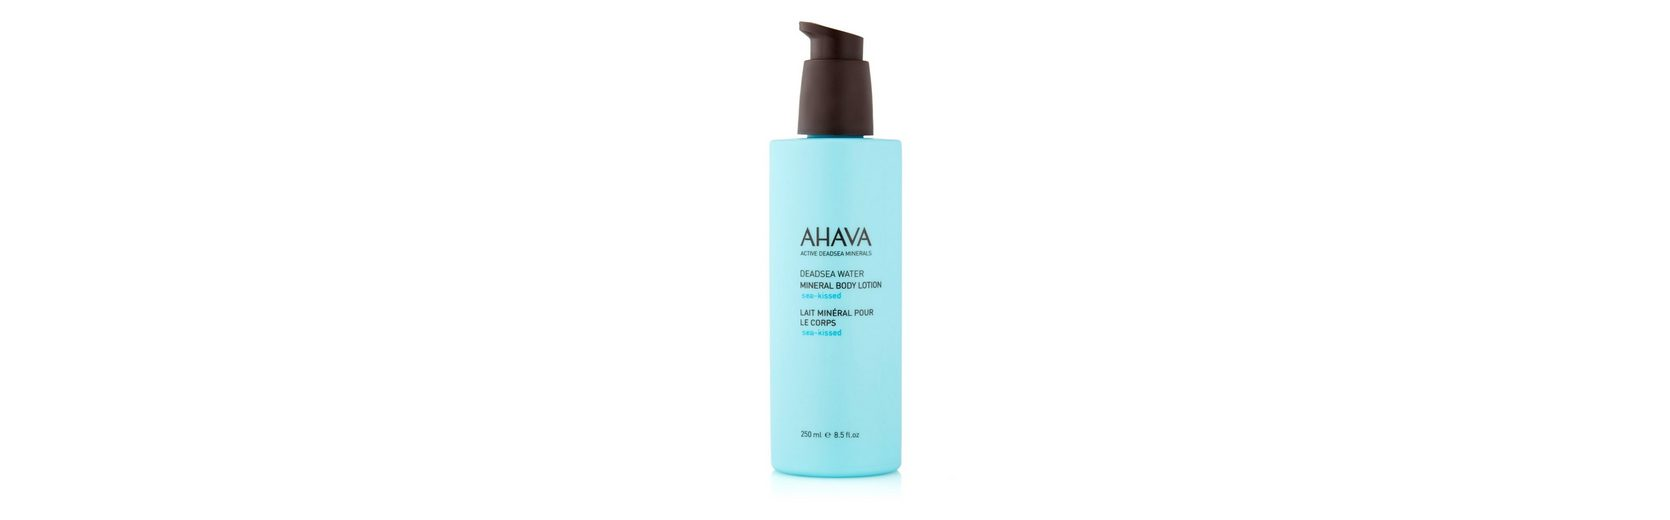 Ahava Körpermilch »Deadsea Water Mineral Body Lotion Sea-Kissed«